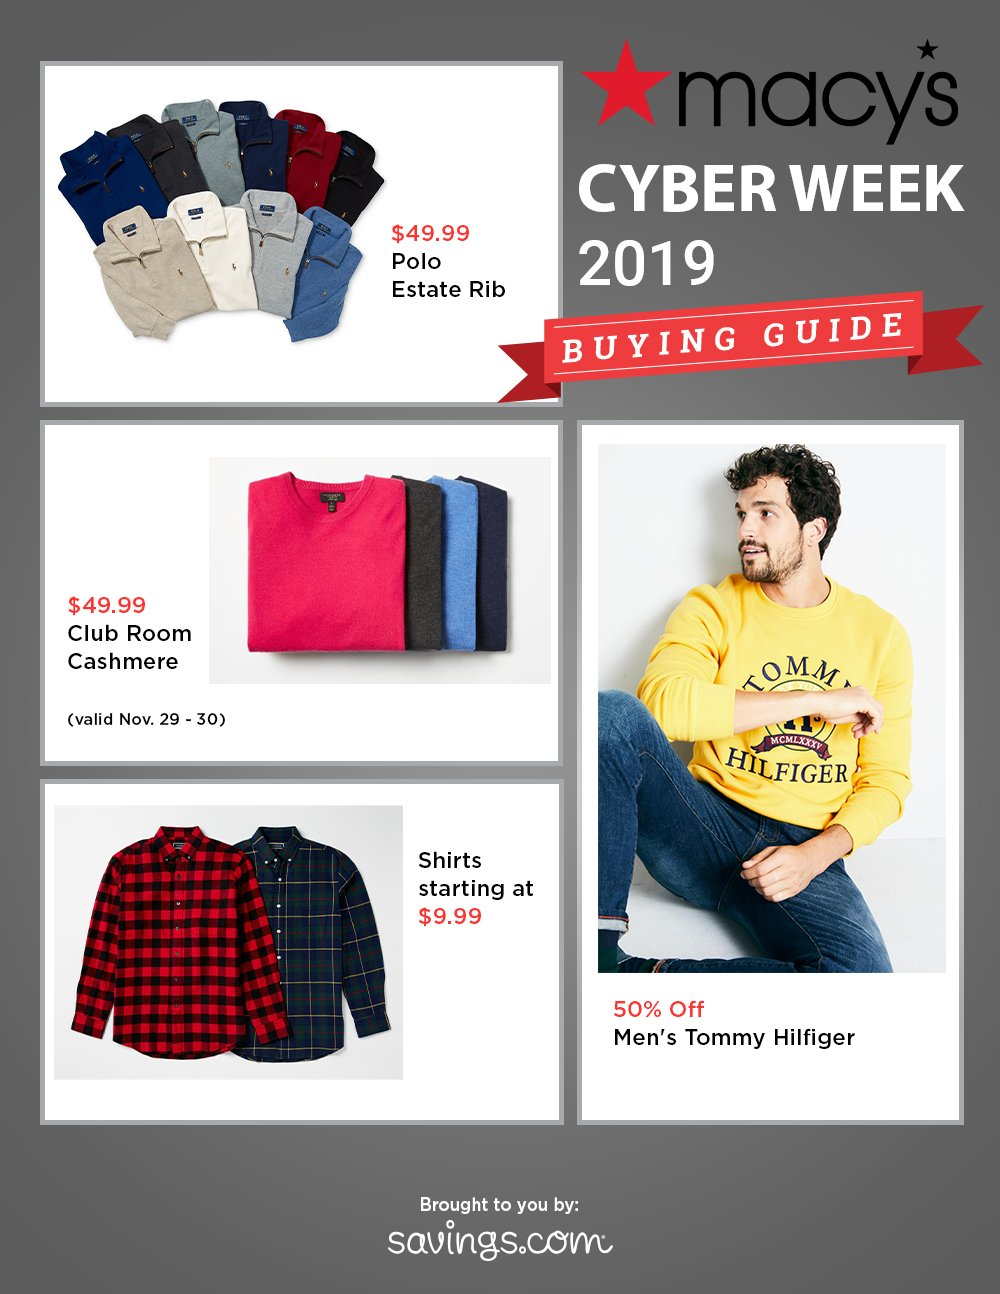 Macy's Cyber Week Buying Guide 2019 Page 4